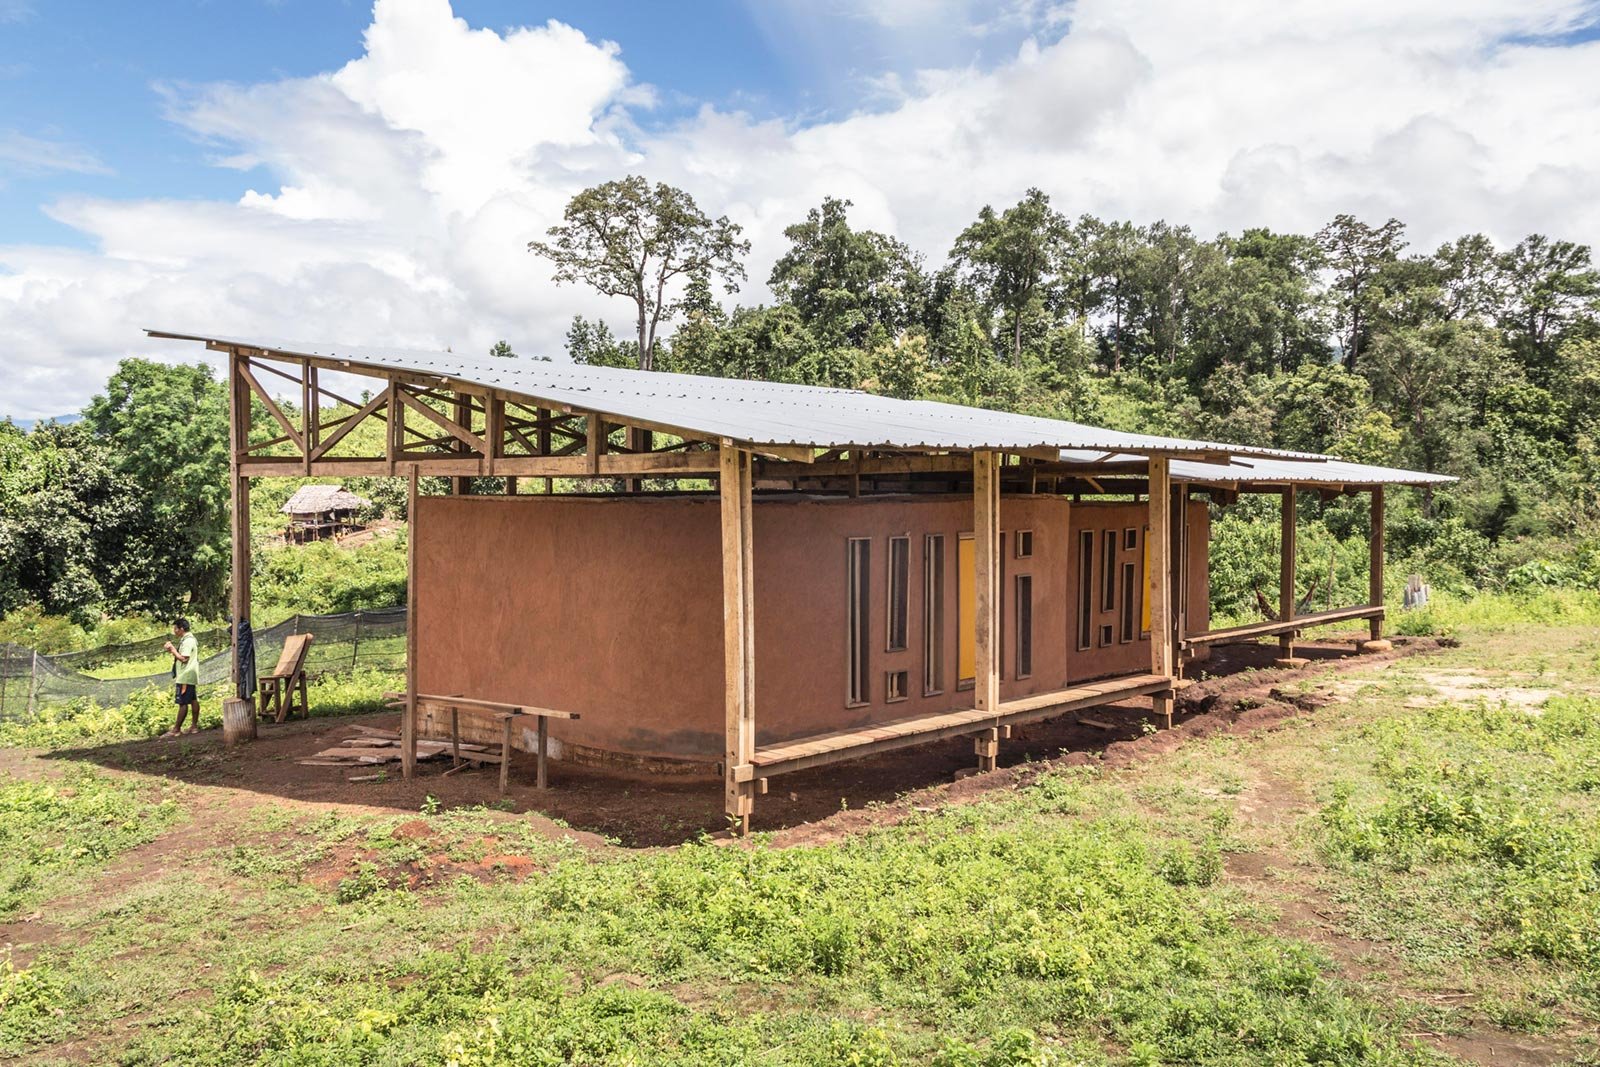 Gaw La Heh Primary School, the first two classrooms are completed. (Burma) —photo by Line Ramstad